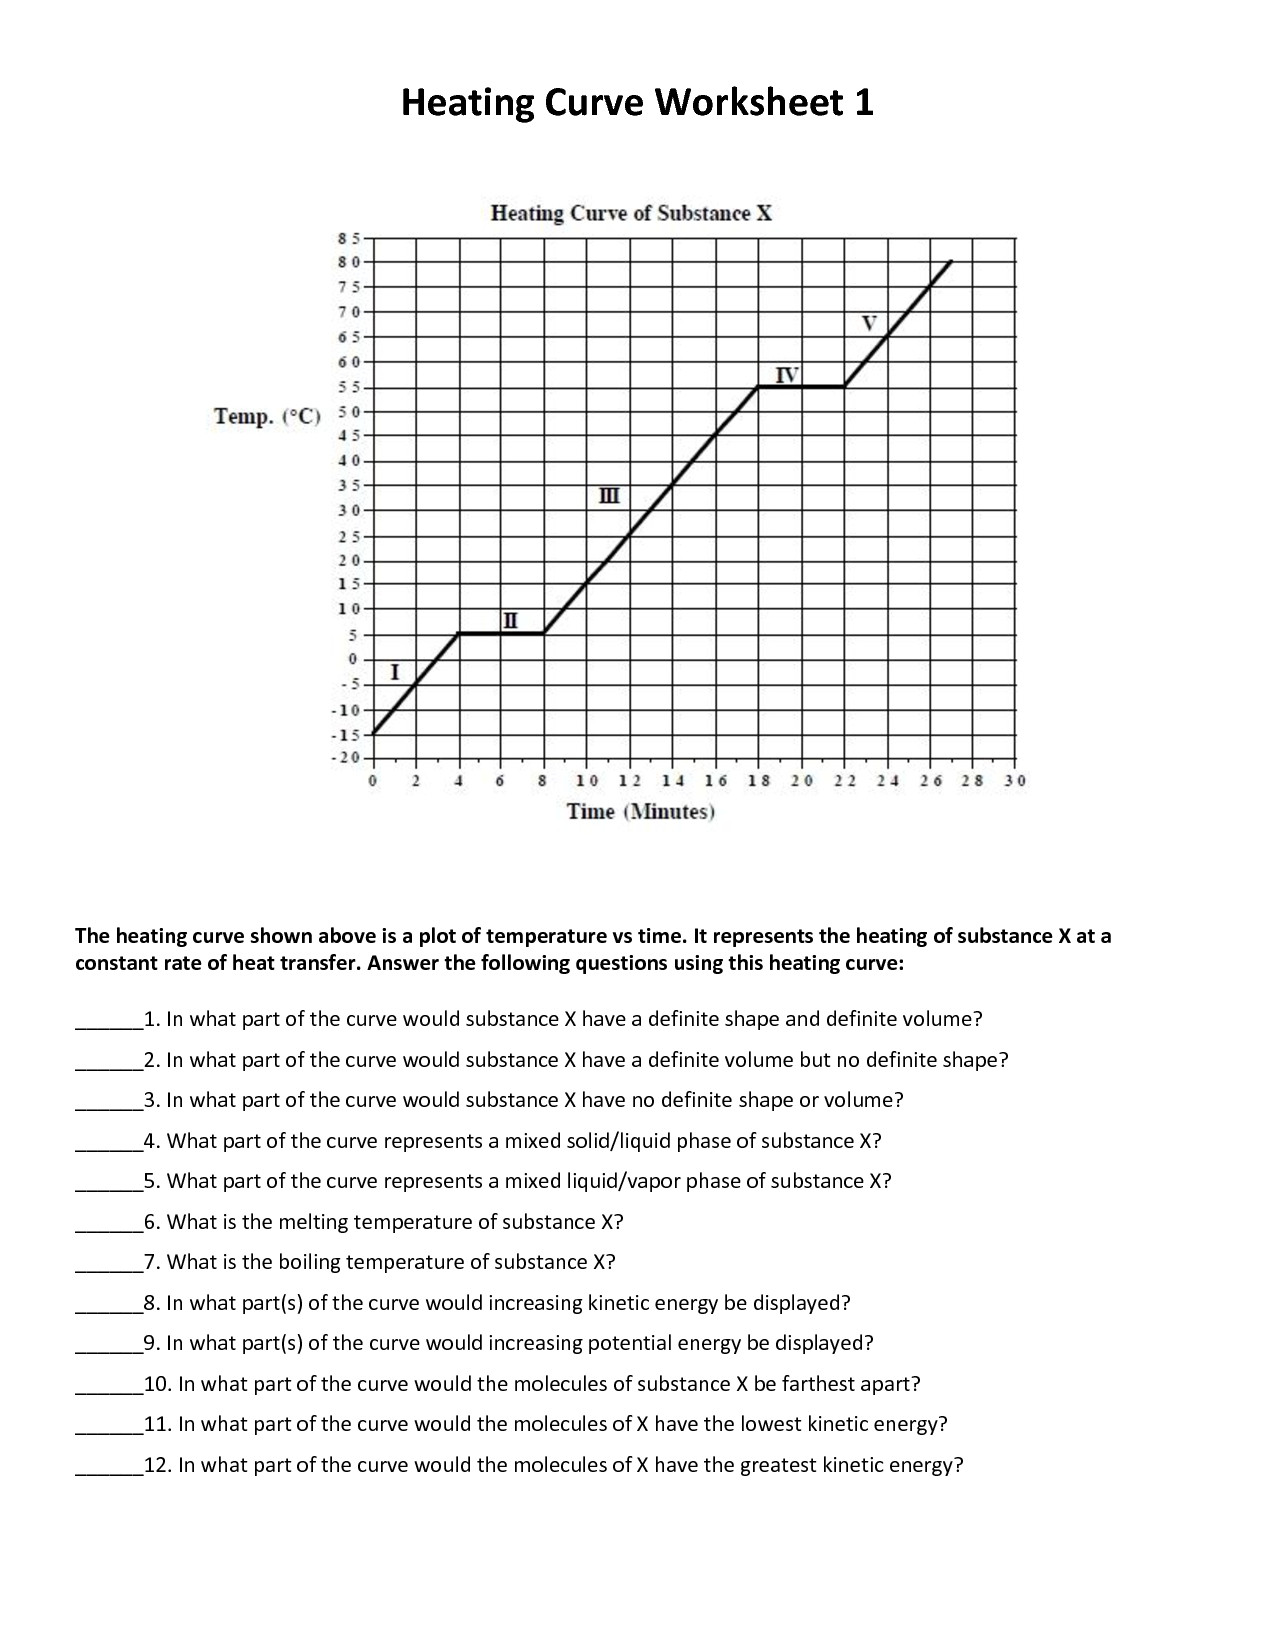 Heating Curve Worksheet Answers Template Parabolic Curve Worksheet